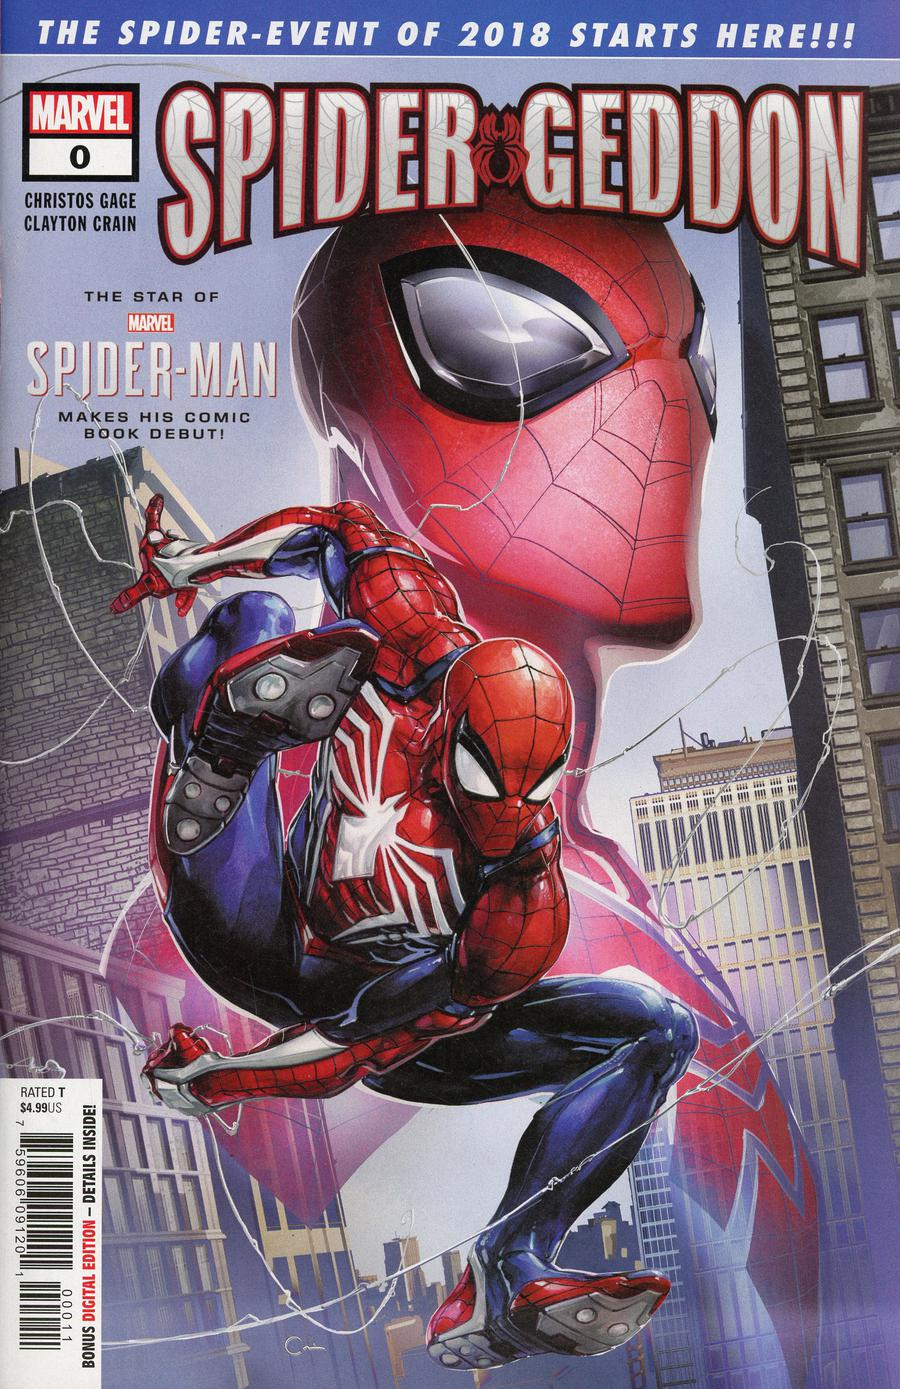 Spider-Geddon #0 Cover A 1st Ptg Regular Clayton Crain Cover